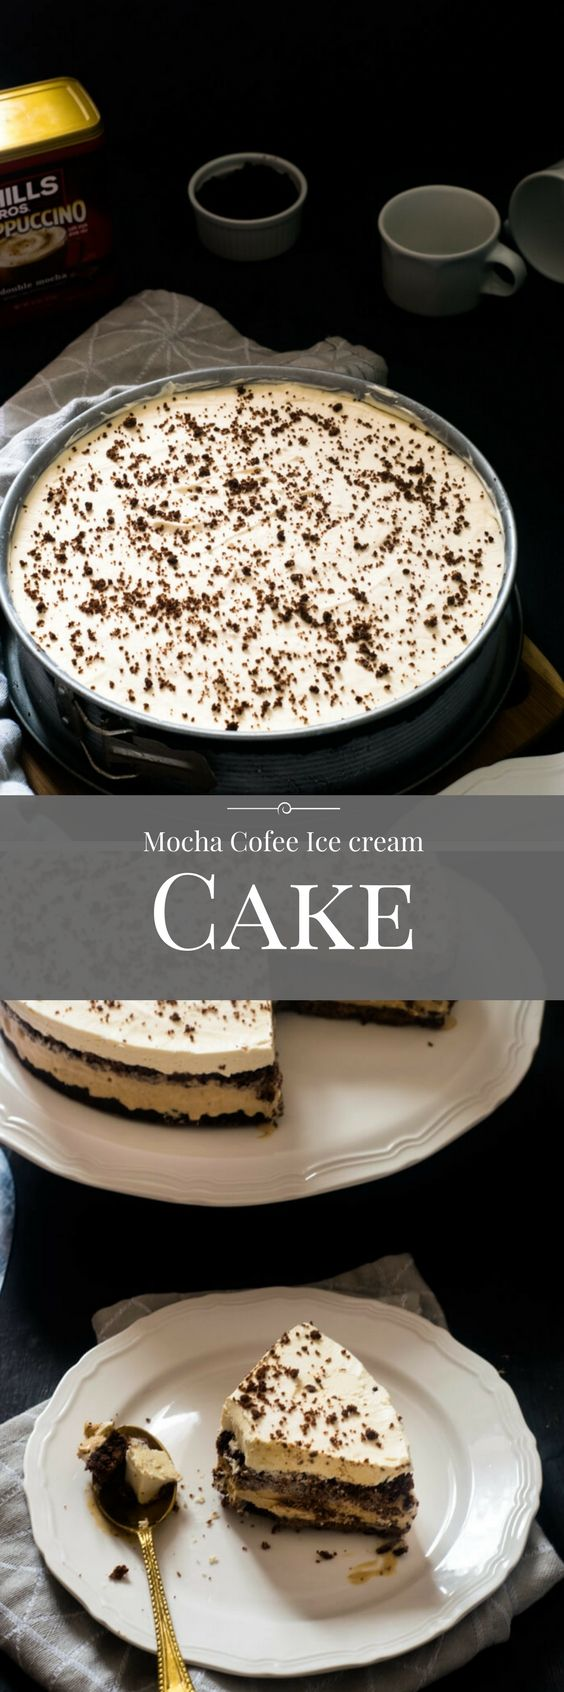 Double Mocha Coffee Ice Cream Cake using @HillsBrosCappuccino is a wonderful cake to end summers.